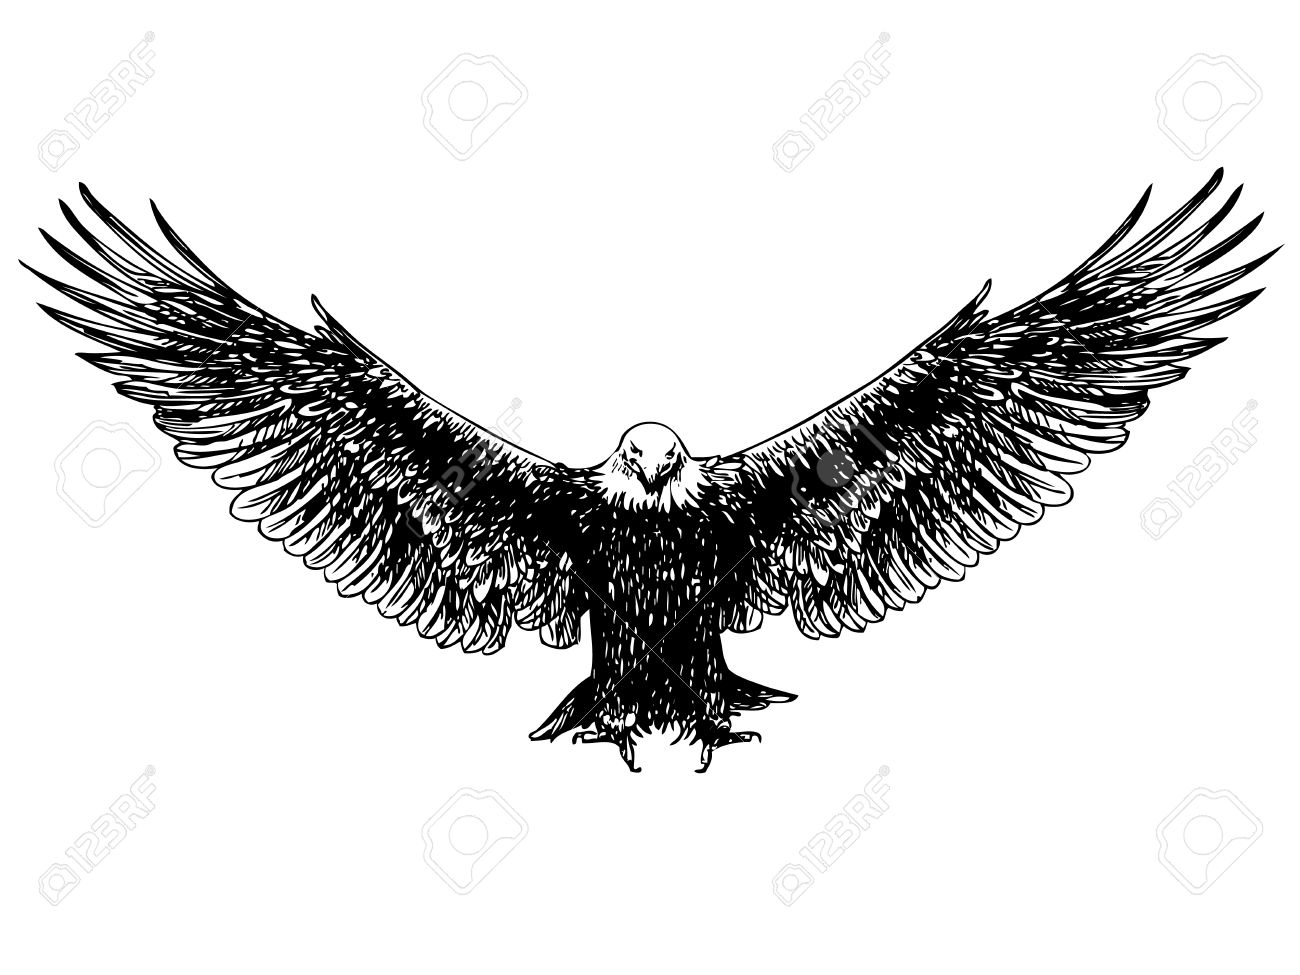 Freehand sketch of flying eagle hand drawn on white background freehand sketch of flying eagle hand drawn on white background stock vector 46096843 altavistaventures Gallery